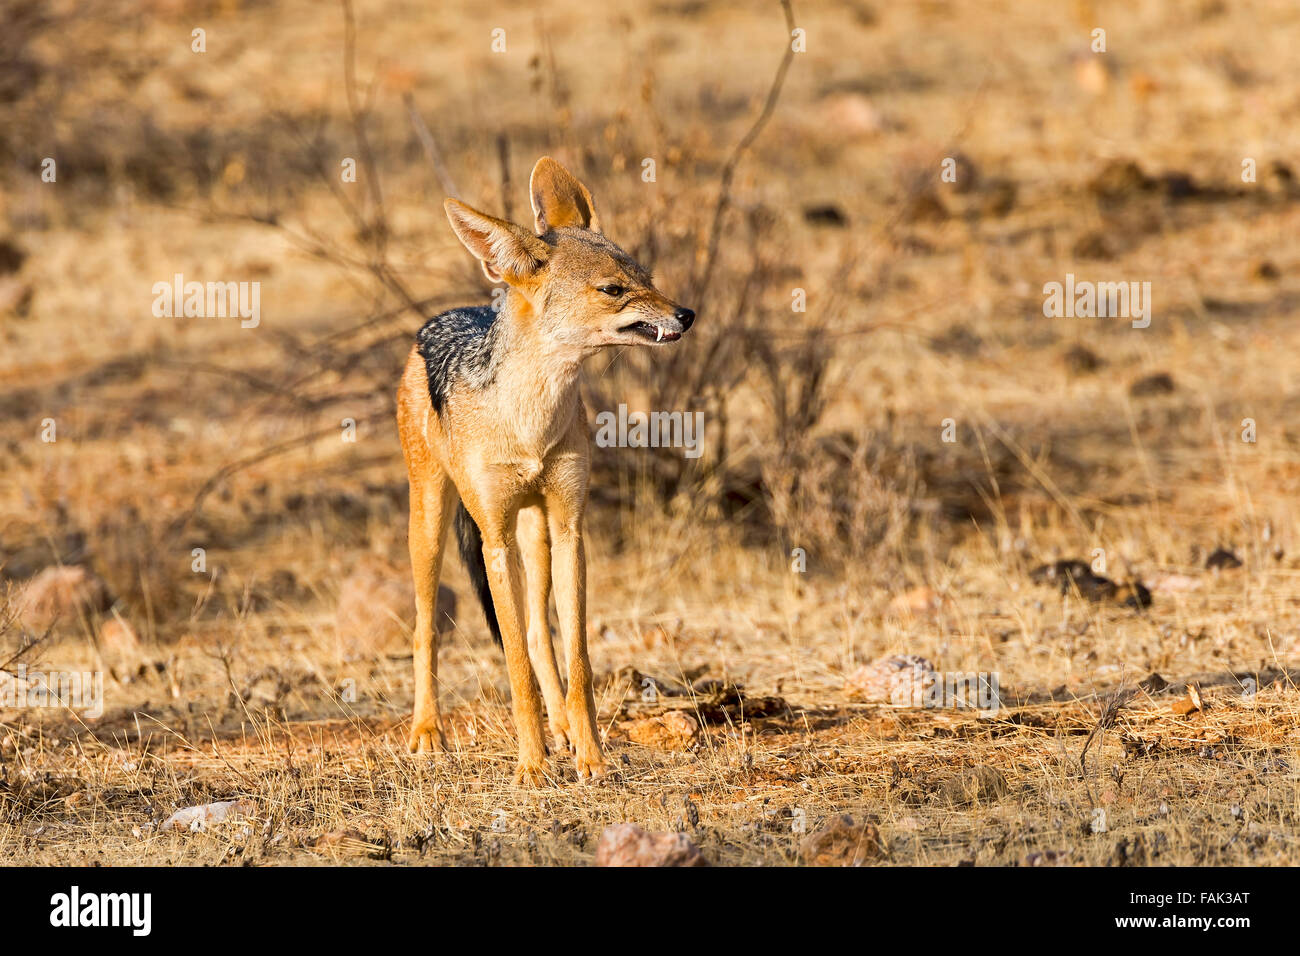 Black-backed jackal (Canis mesomelas) snarling, Samburu National Reserve, Kenya - Stock Image